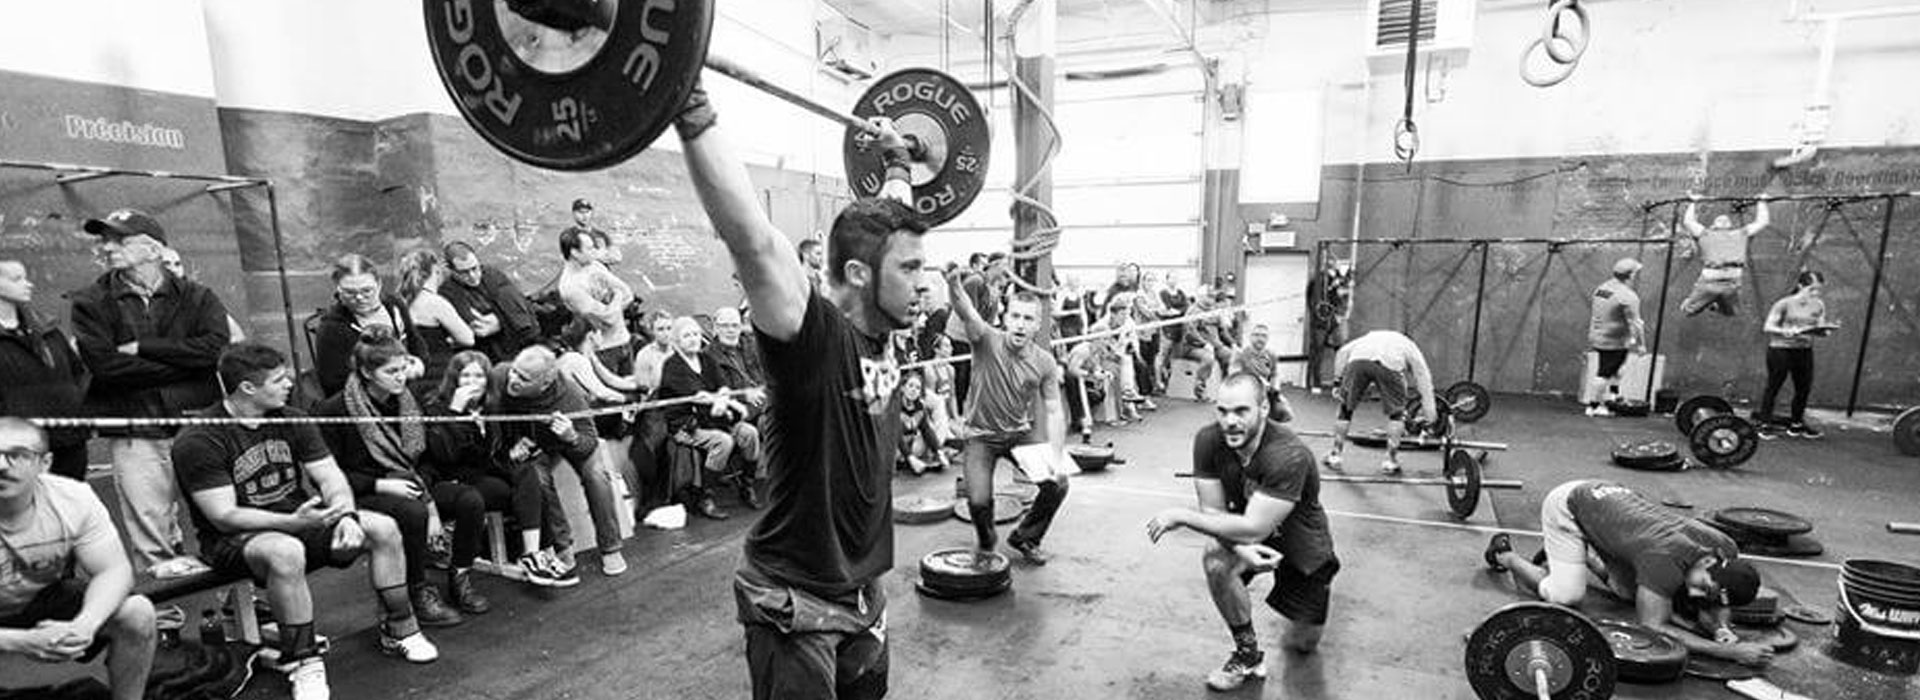 Why CrossFit Granby Is Ranked One Of The Best Gyms near Granby QC, Why CrossFit Granby Is Ranked One Of The Best Gyms near Downtown Granby QC, Why CrossFit Granby Is Ranked One Of The Best Gyms near Zoo Granby QC, Why CrossFit Granby Is Ranked One Of The Best Gyms near Estrie QC